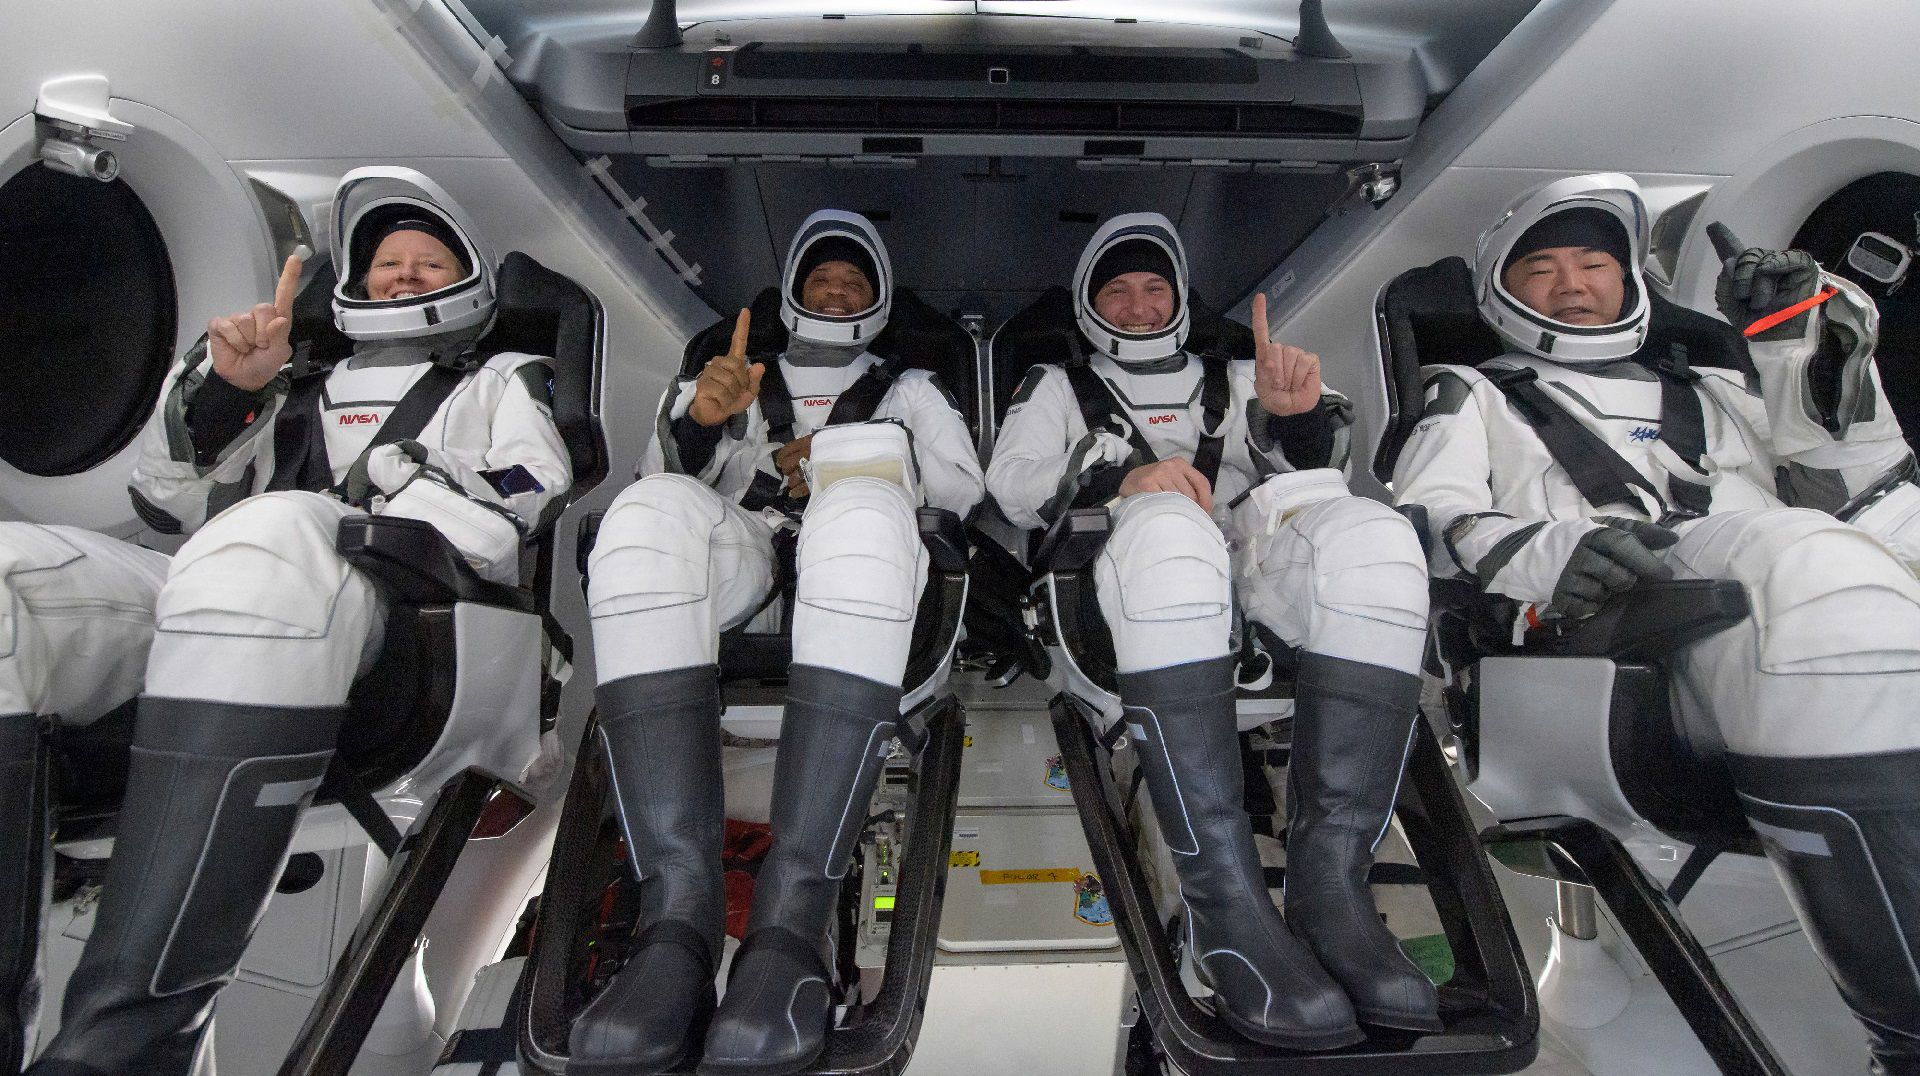 """This handout image courtesy of NASA and made available on May 2, 2021, shows NASA astronauts from left:- Shannon Walker, Victor Glover, Mike Hopkins, and Japan Aerospace Exploration Agency (JAXA) astronaut Soichi Noguchi, strapped in their seats inside the SpaceX Crew Dragon Resilience spacecraft onboard the SpaceX GO Navigator recovery ship shortly after having landed in the Gulf of Mexico off the coast of Panama City, Florida, on May 2, 2021. - NASA�s SpaceX Crew-1 mission was the first crew rotation flight of the SpaceX Crew Dragon spacecraft and Falcon 9 rocket with astronauts to the International Space Station as part of the agency�s Commercial Crew Program. (Photo by Bill INGALLS / (NASA/Bill Ingalls) / AFP) / RESTRICTED TO EDITORIAL USE - MANDATORY CREDIT """"AFP PHOTO /NASA/Bill INGALLS"""" - NO MARKETING - NO ADVERTISING CAMPAIGNS - DISTRIBUTED AS A SERVICE TO CLIENTS"""